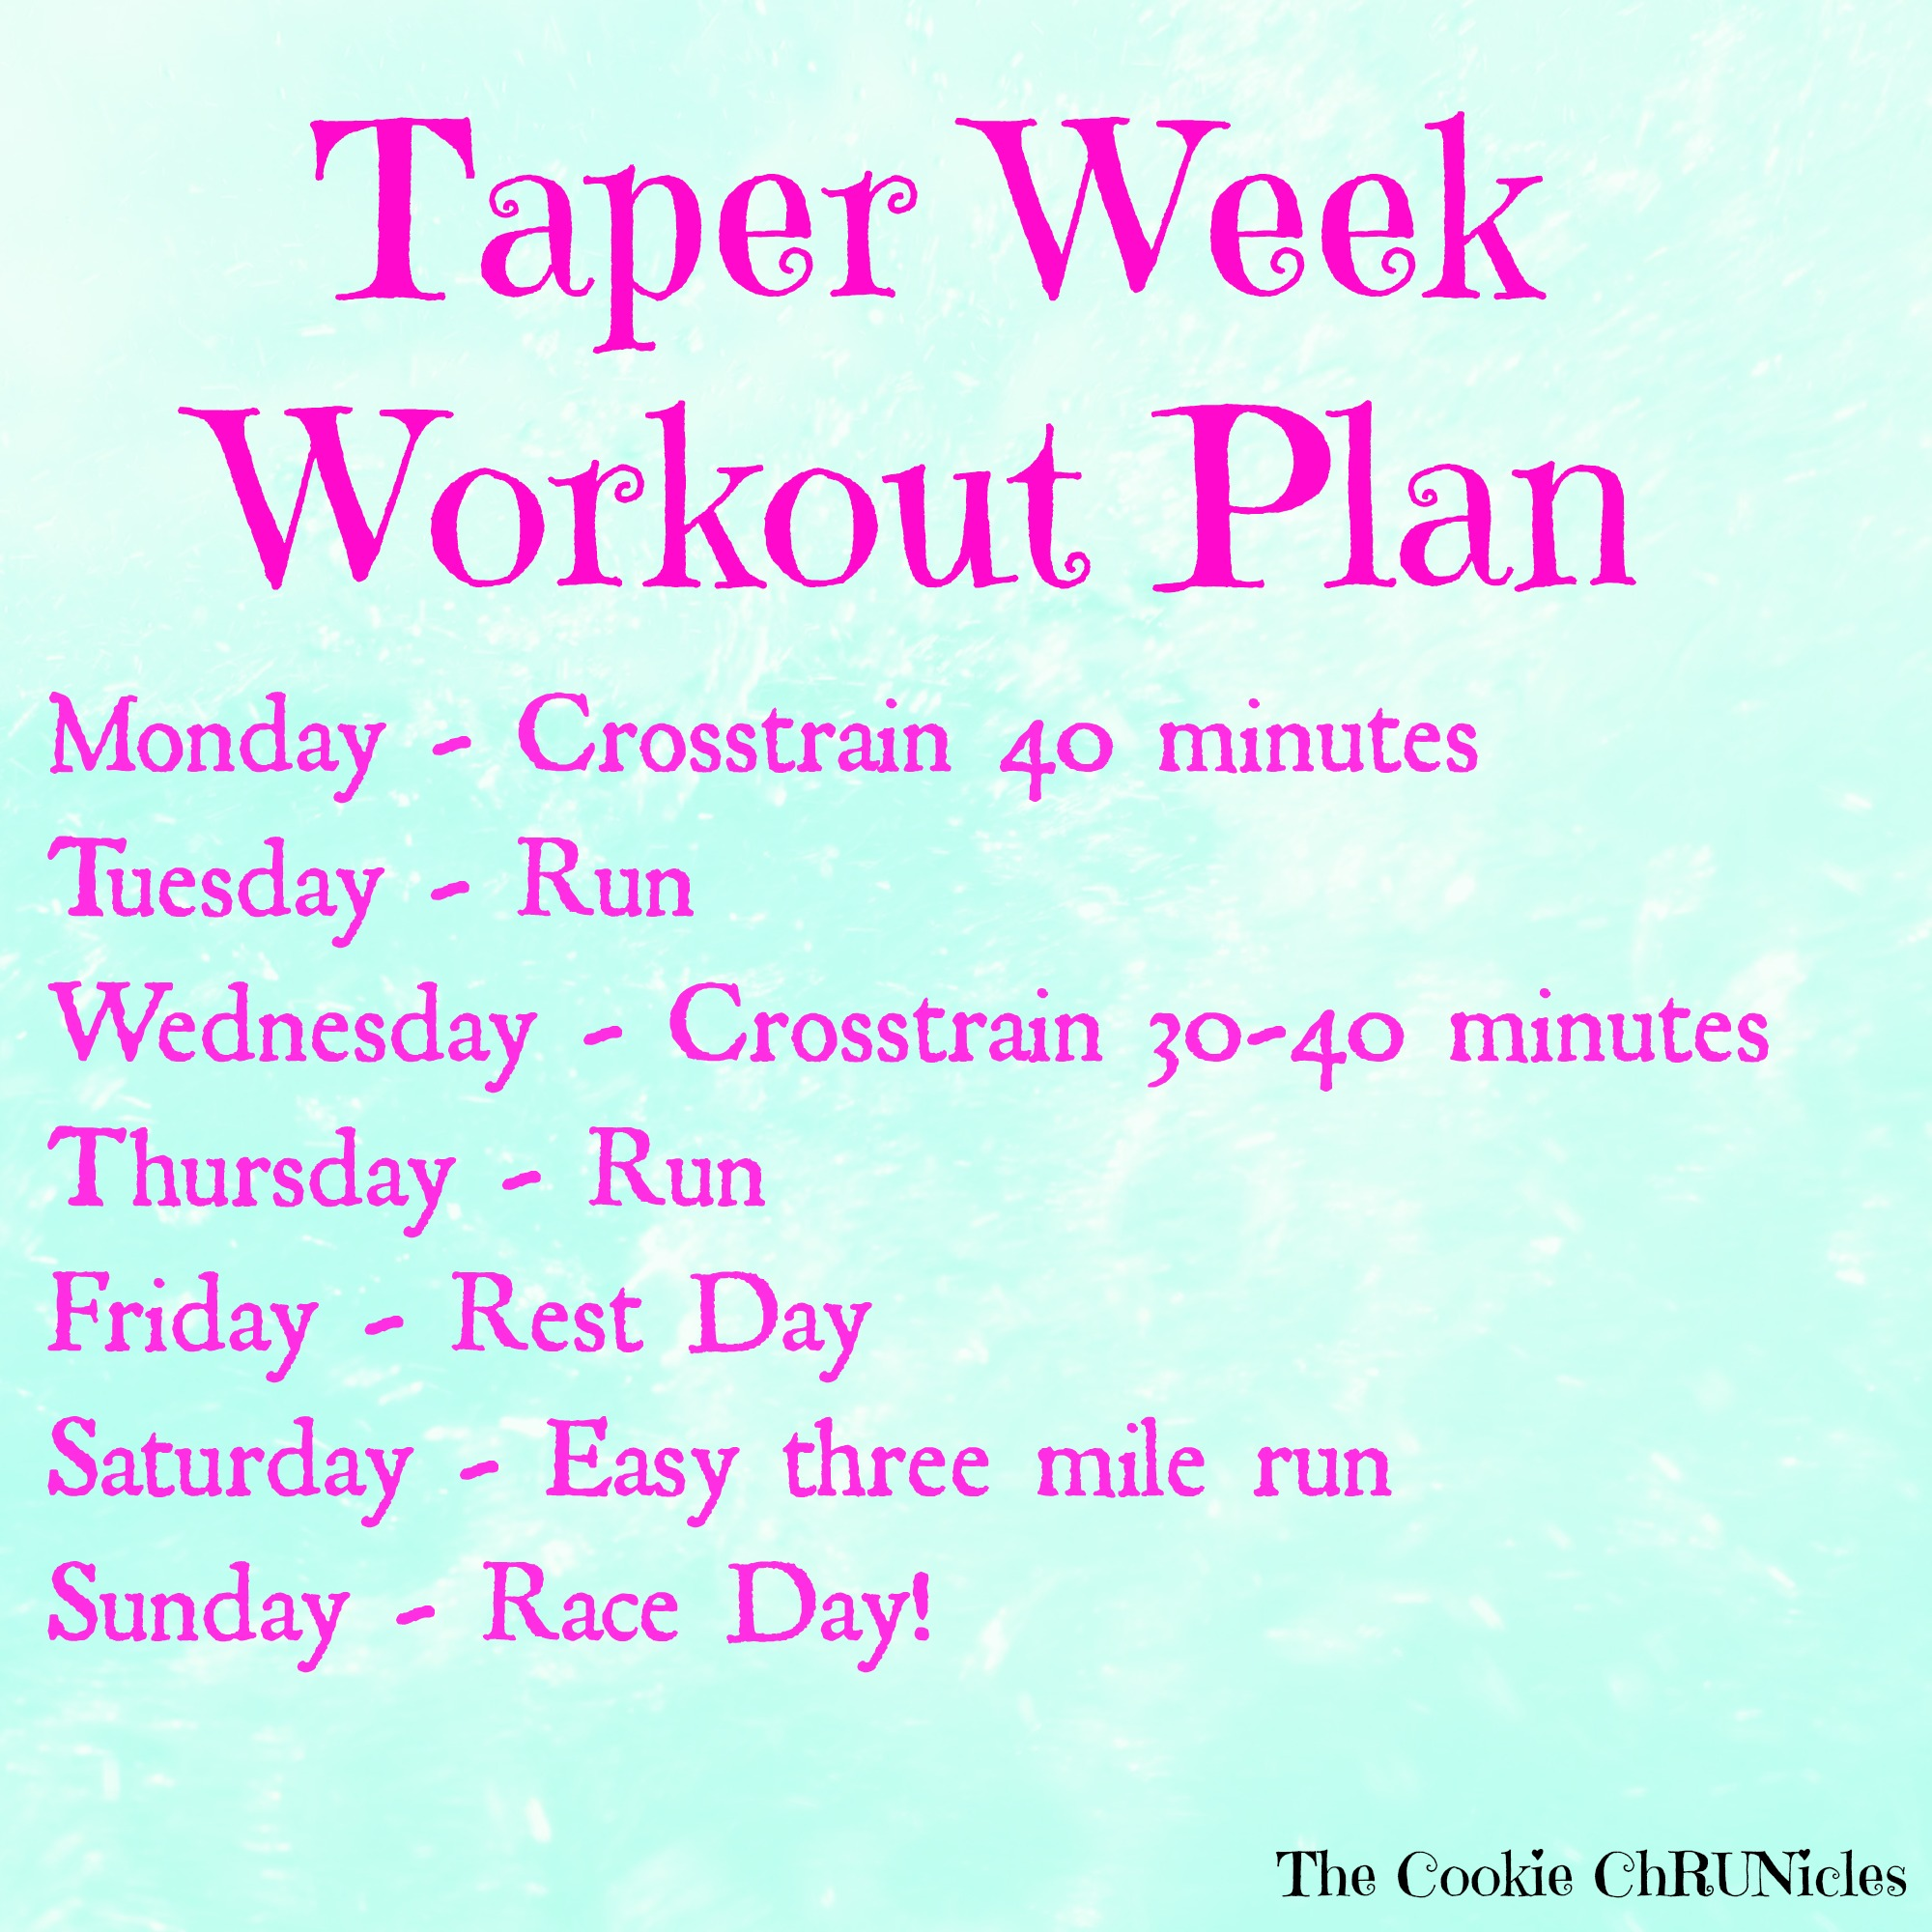 981724a451fc Taper Week Workouts And Race Day Essentials - The Cookie ChRUNicles